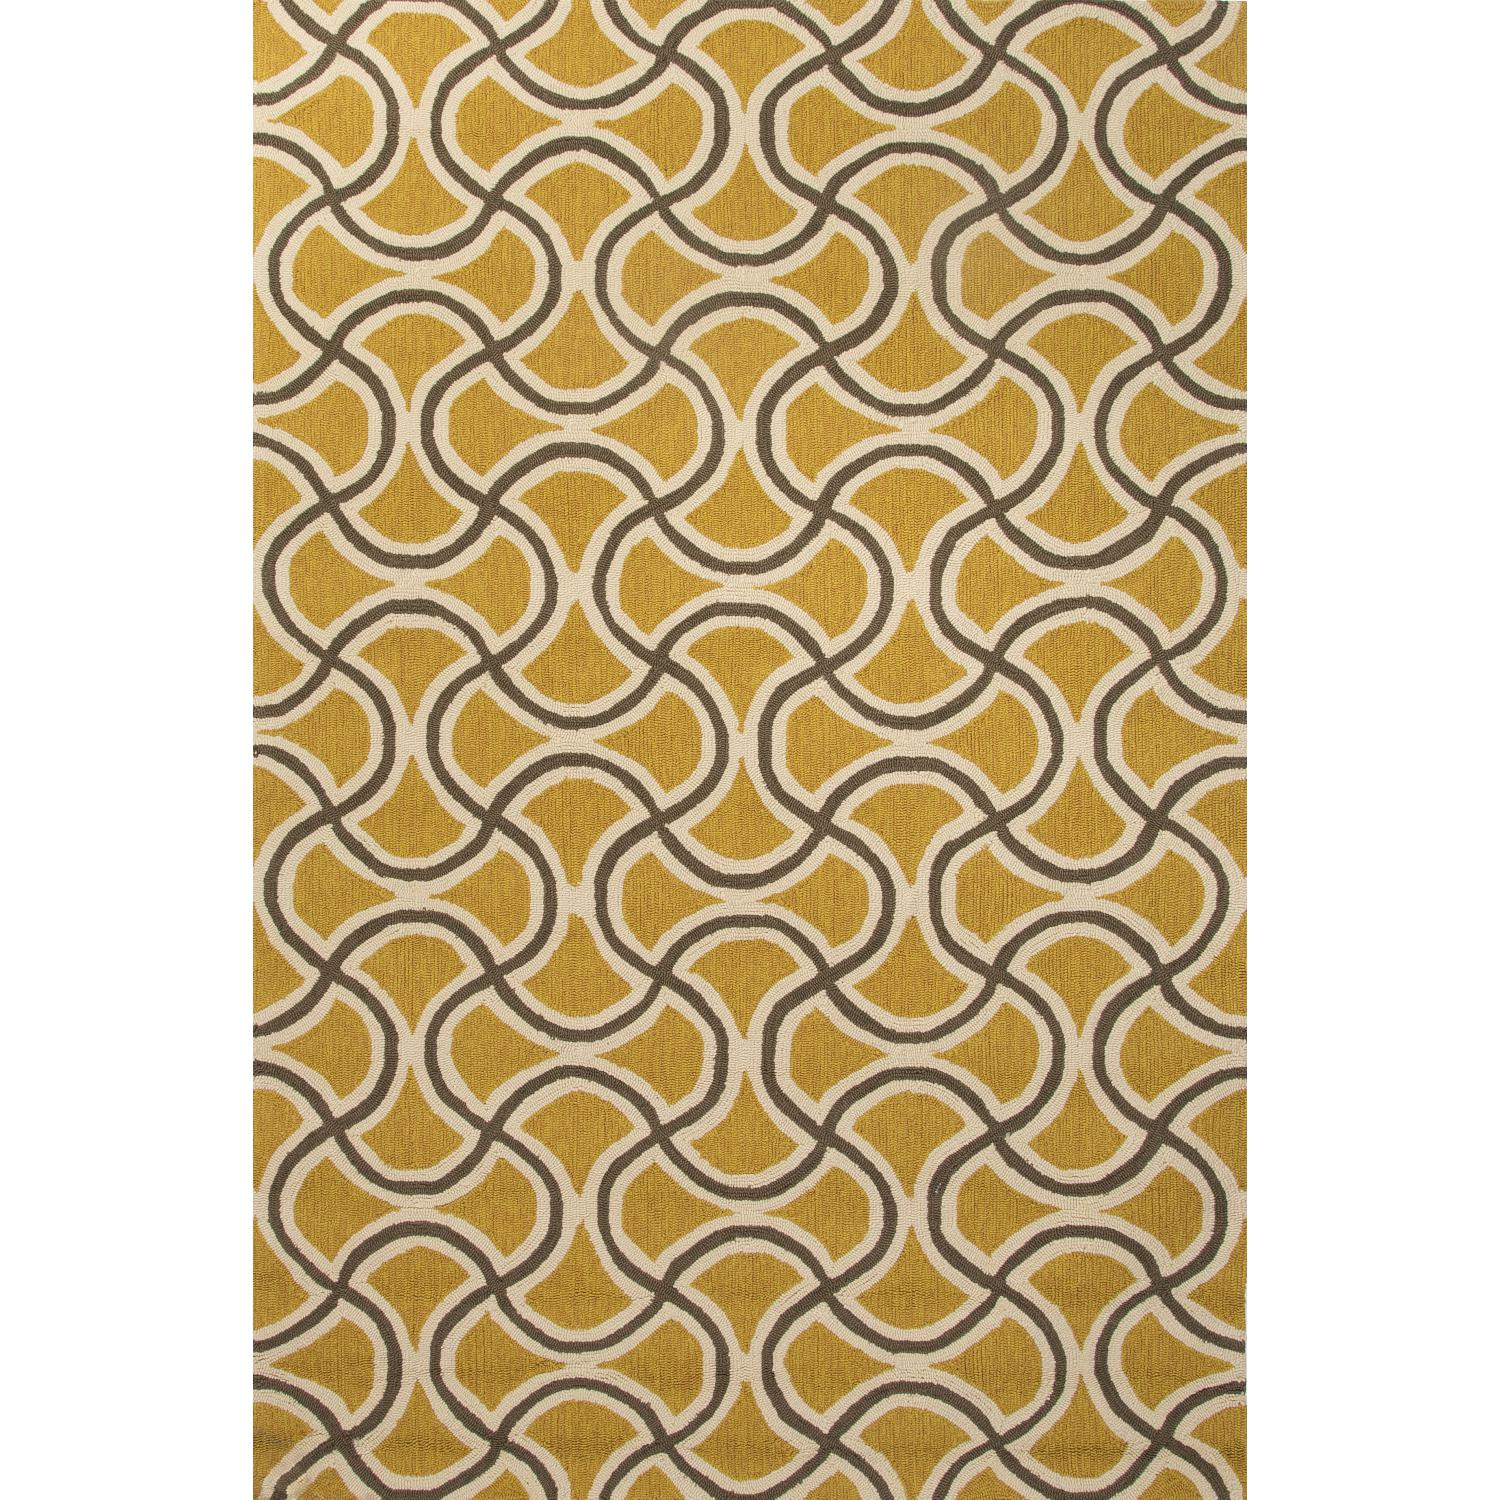 Picture of Jaipur Rugs Barcelona Barbells 2 X 3 Indoor/Outdoor Rug - Yellow/Taupe